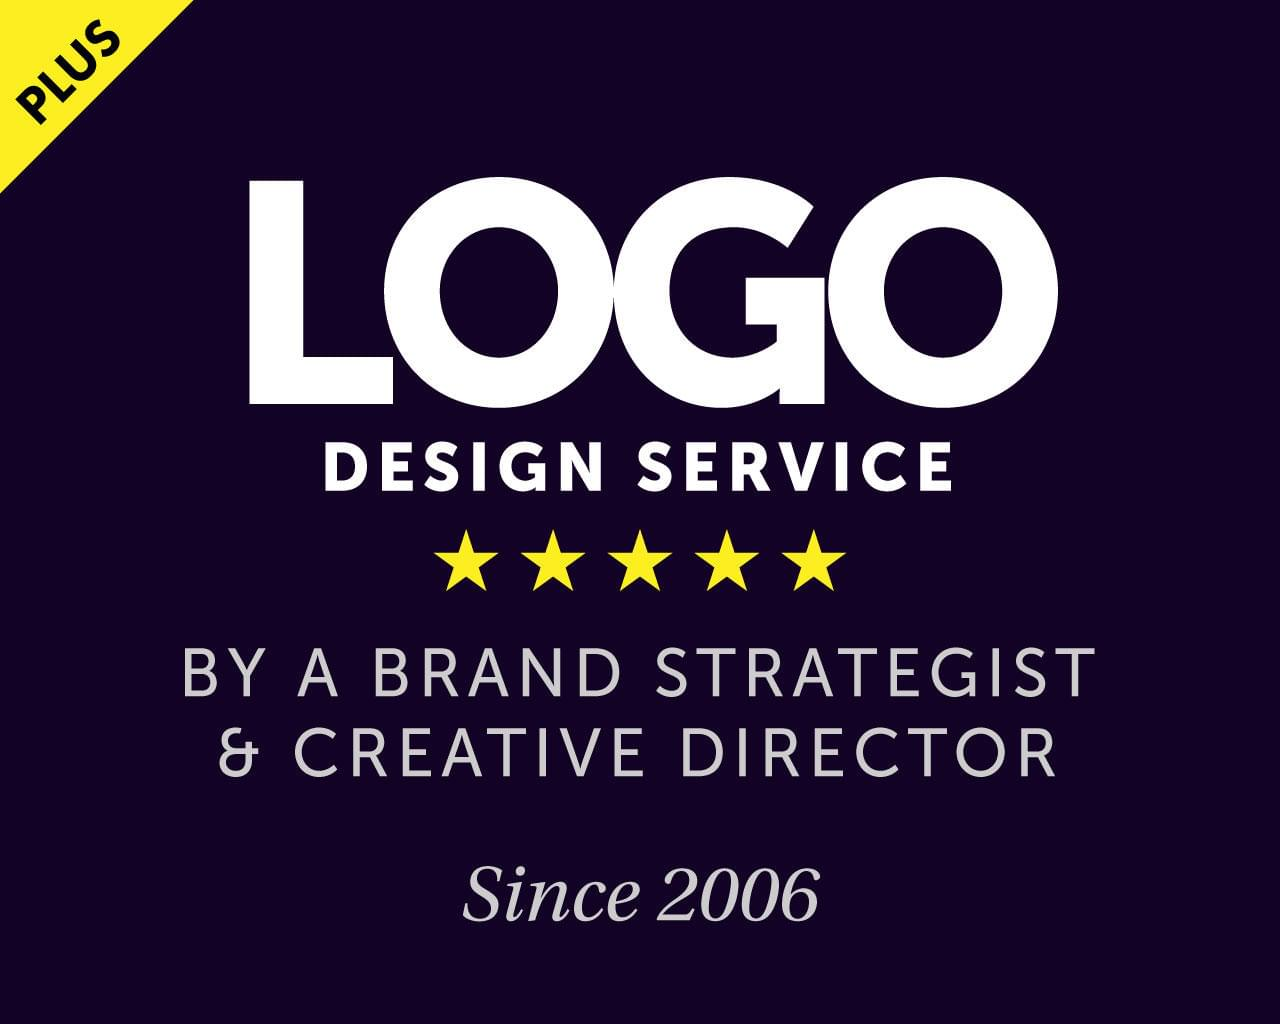 Professional Logo Design - Timeless Brands, Monogram, Wordmarks, Pictorials or Abstract by AnasProStudio - 116659